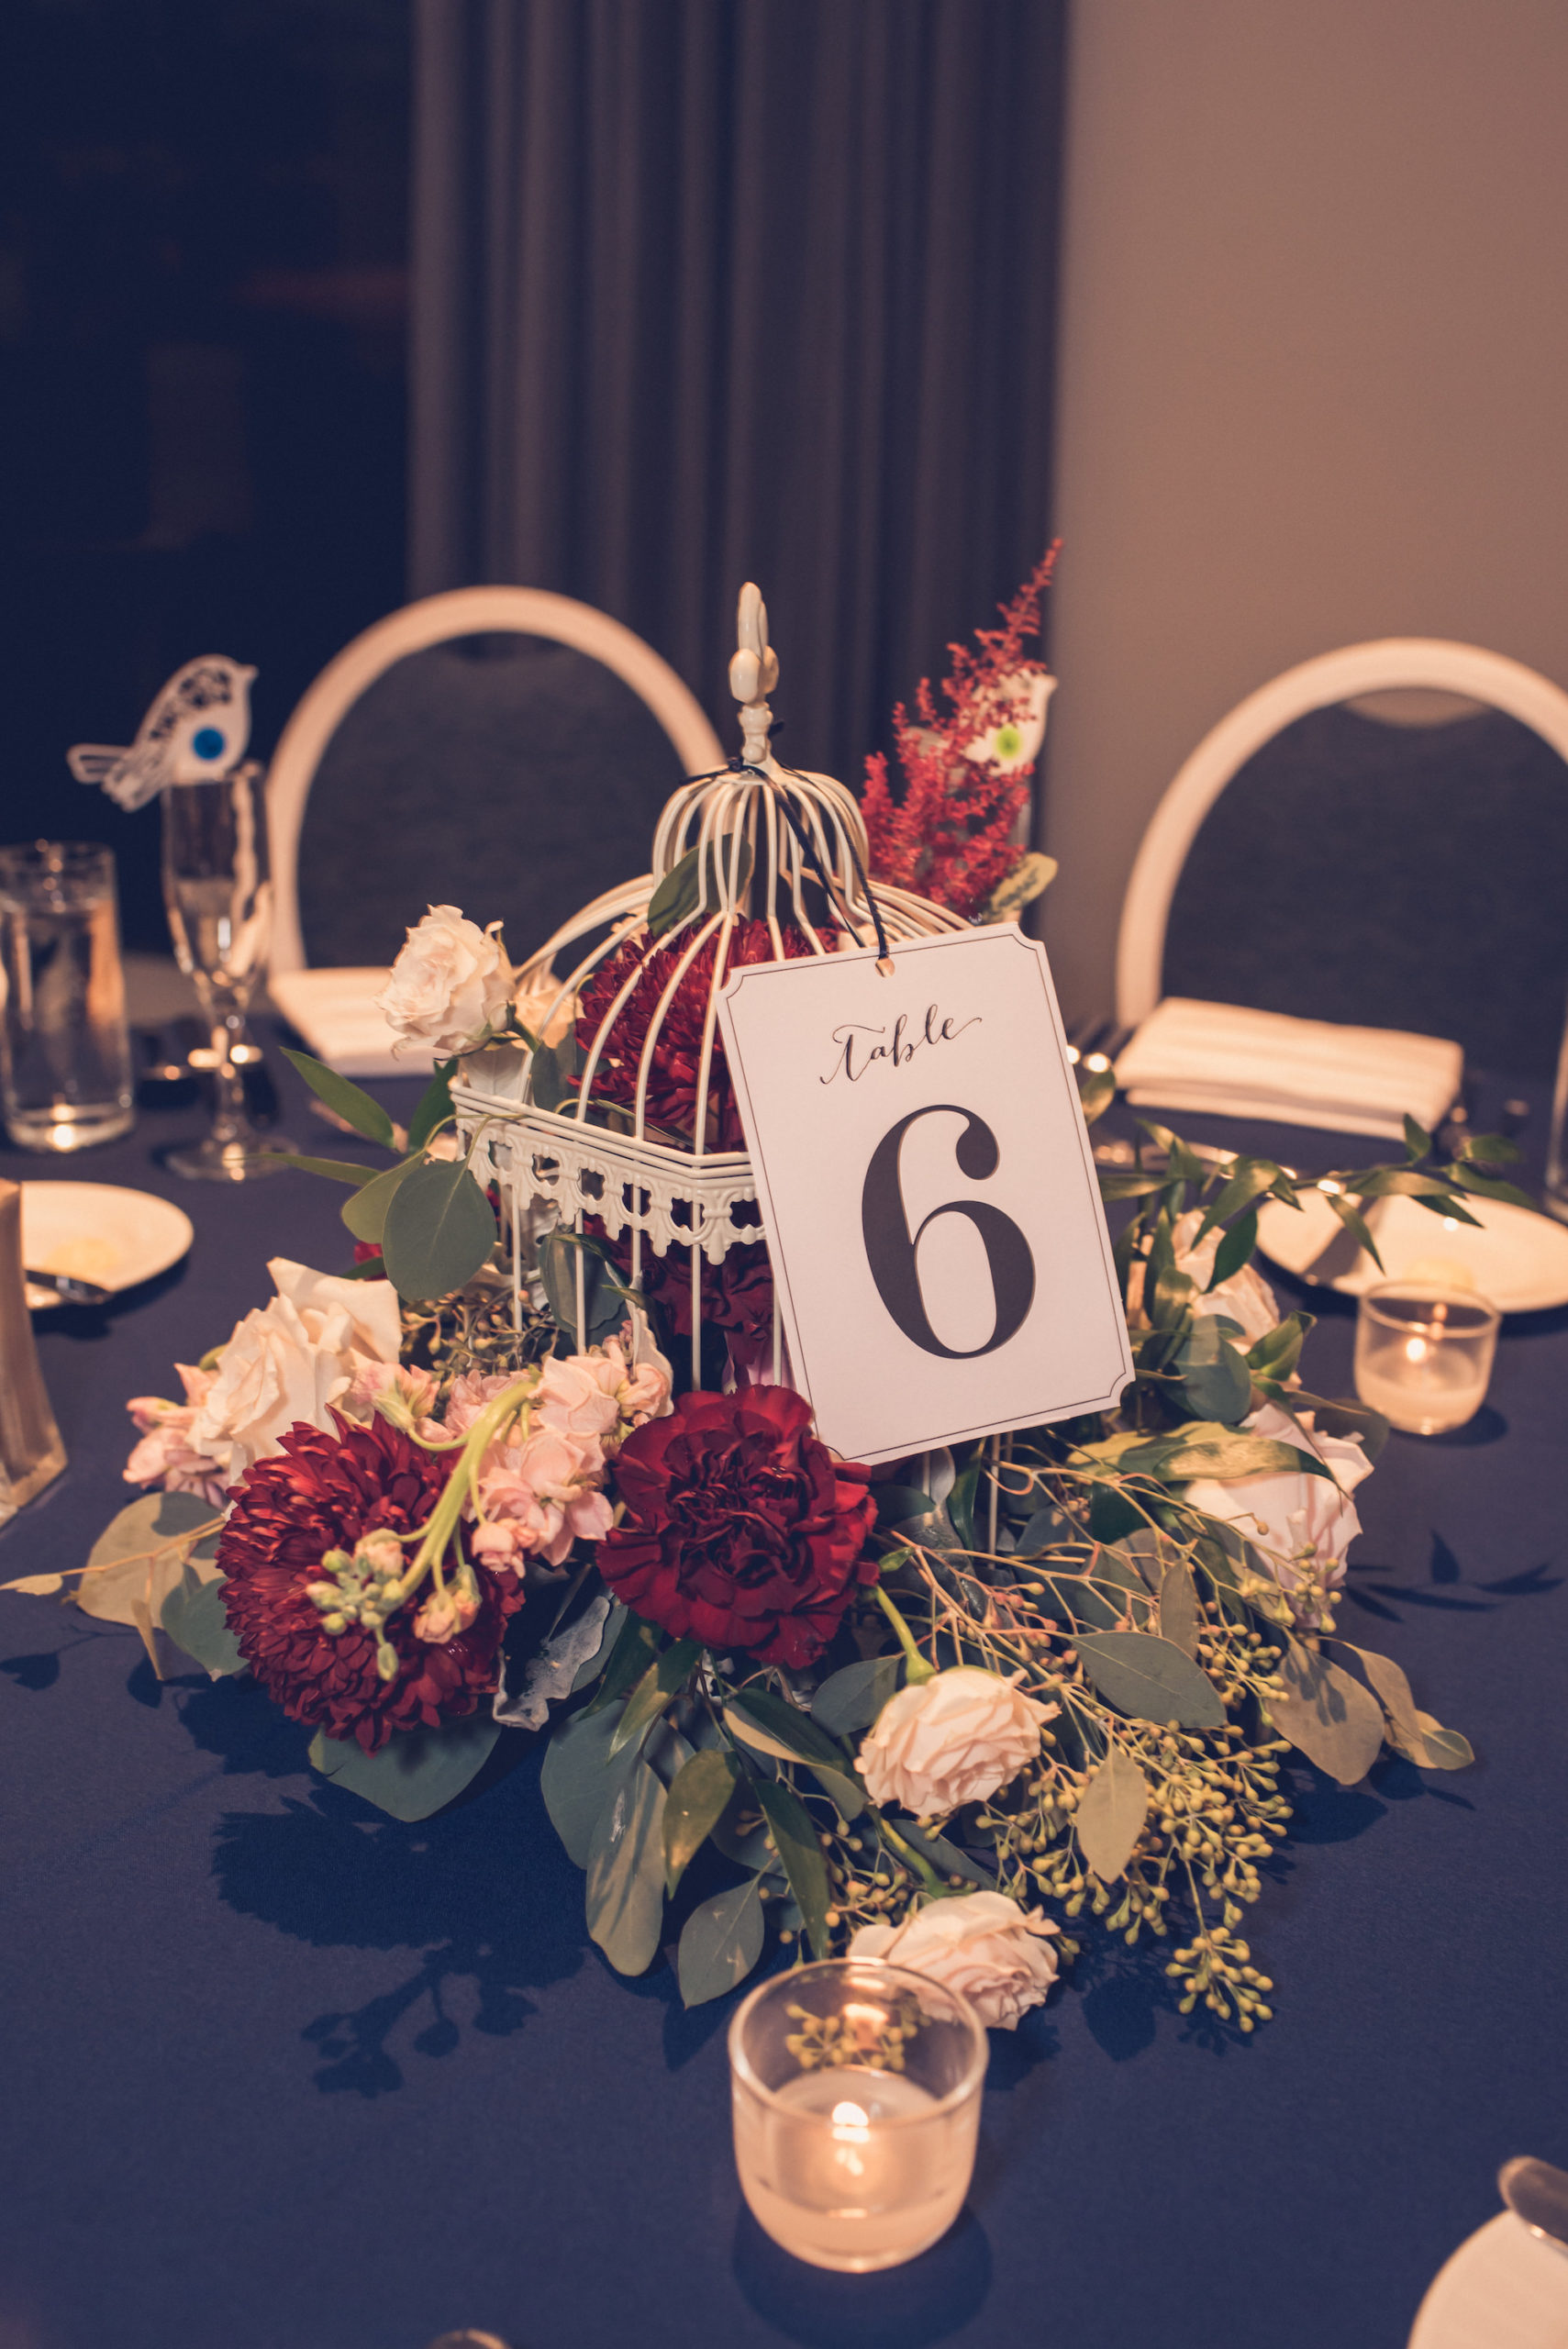 Quirky Elegant Wedding Reception Decor, White Birdcage with Burgundy Flowers, Blush Pink Roses, Eucalyptus Leaves Floral Centerpiece | Wedding Photographer Luxe Light Images